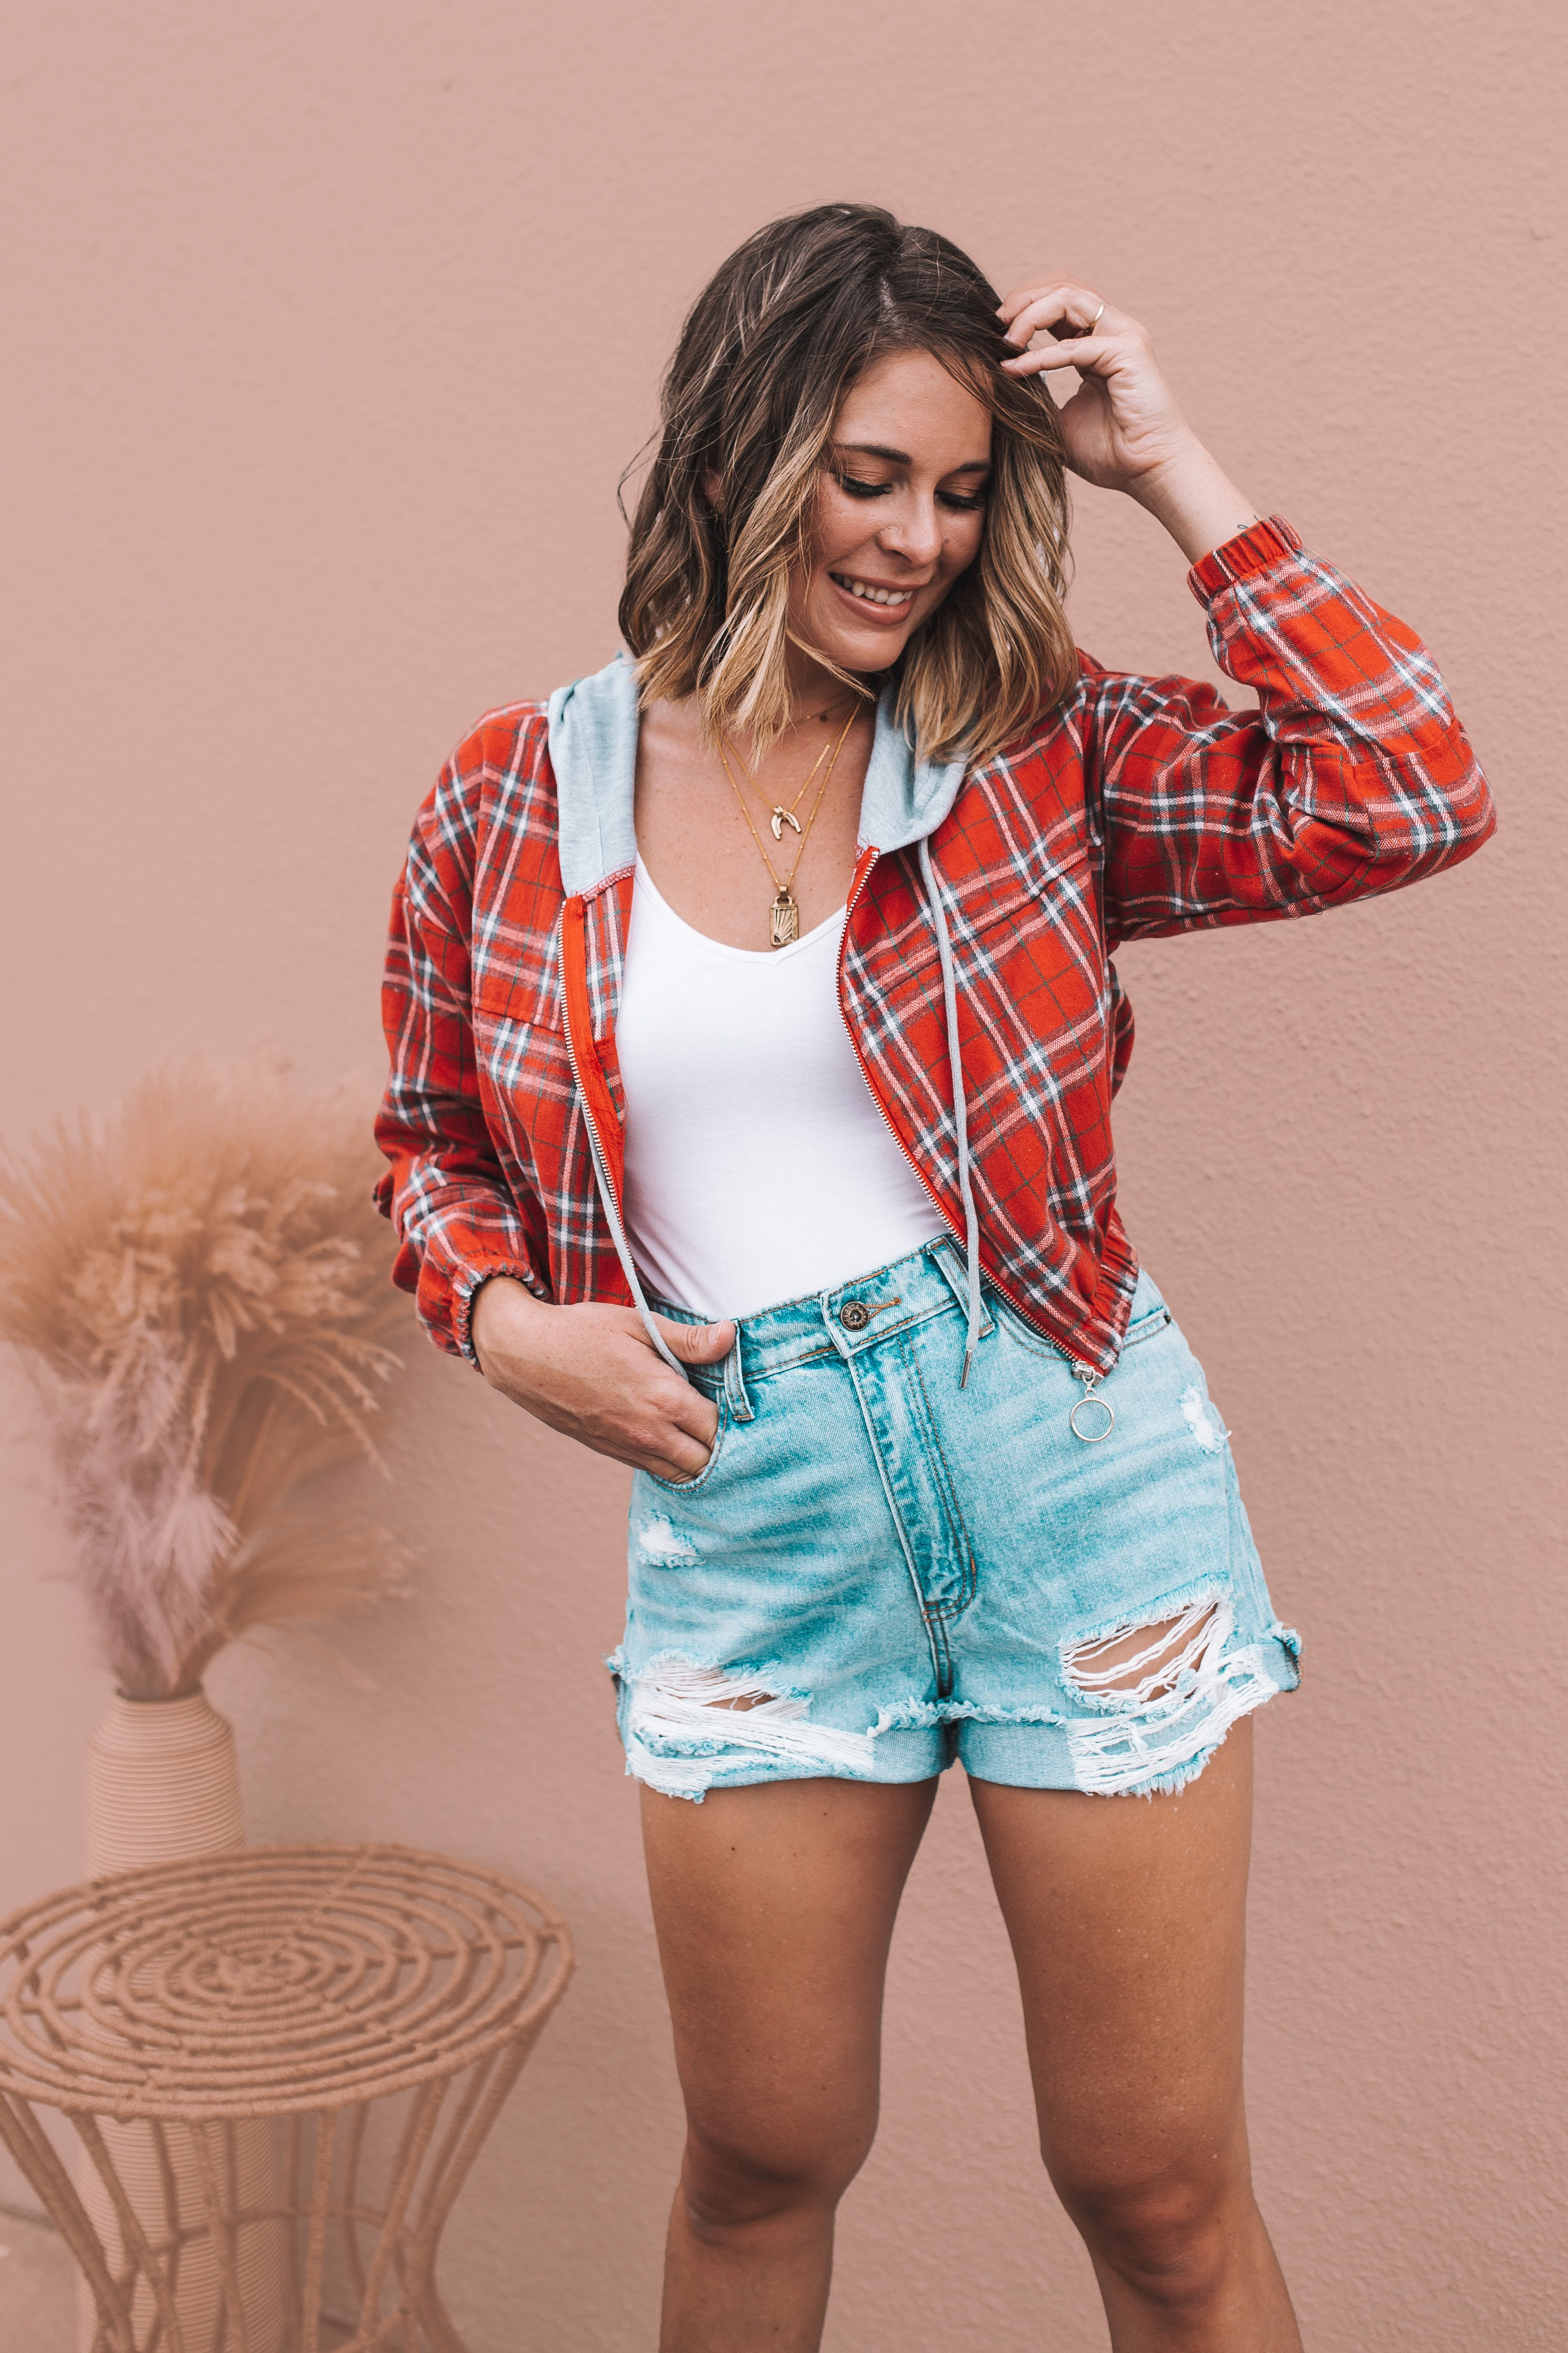 RED PLAID, LIGHTWEIGHT JACKET WITH ELASTIC CUFFS AND WAIST. CROPPED FIT. GREY HOOD WITH DRAWSTRING. ZIP-UP FRONT. 80% COTTON, 20% POLYESTER. AMANDA IS 5'7 SIZE 2, WEARING A SMALL. GABBY IS SIZE 10/12 WEARING A LARGE. S 0-4 M 4-8 L 8-12